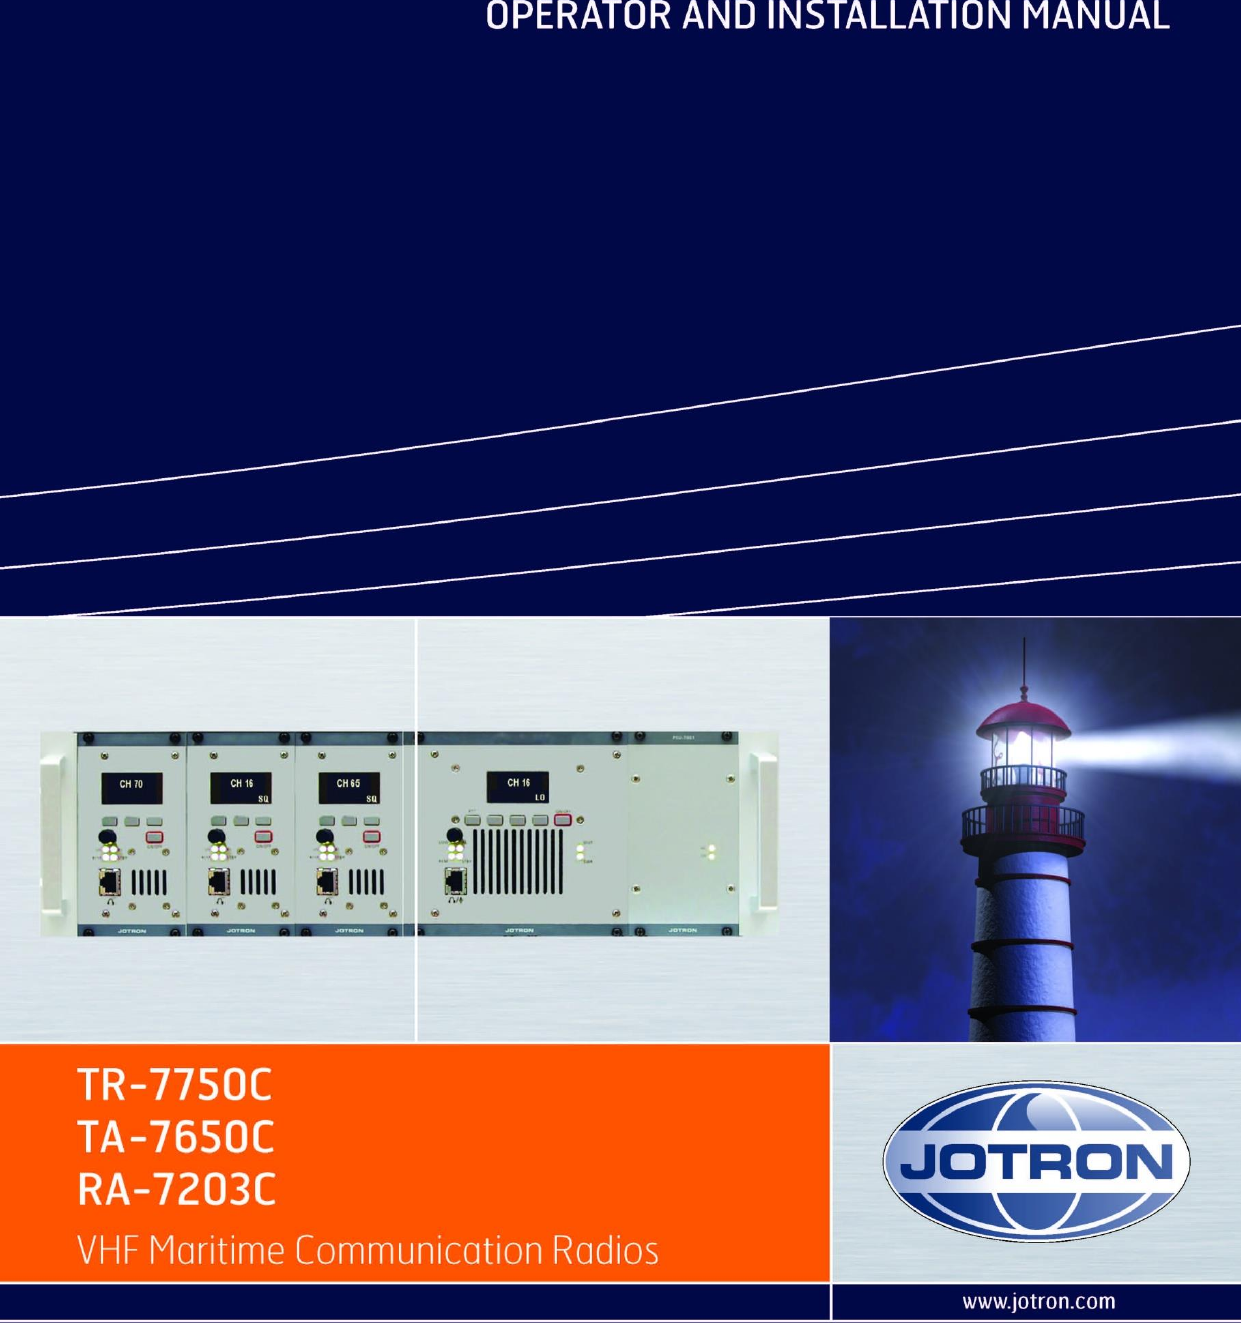 Jotron as ra 7203c vhf receiver 156300 162000mhz for coast for coast stations and offshore installations requiring high quality fm voice and digital selective calling dsc user manual operators handbook tr7750 fandeluxe Image collections